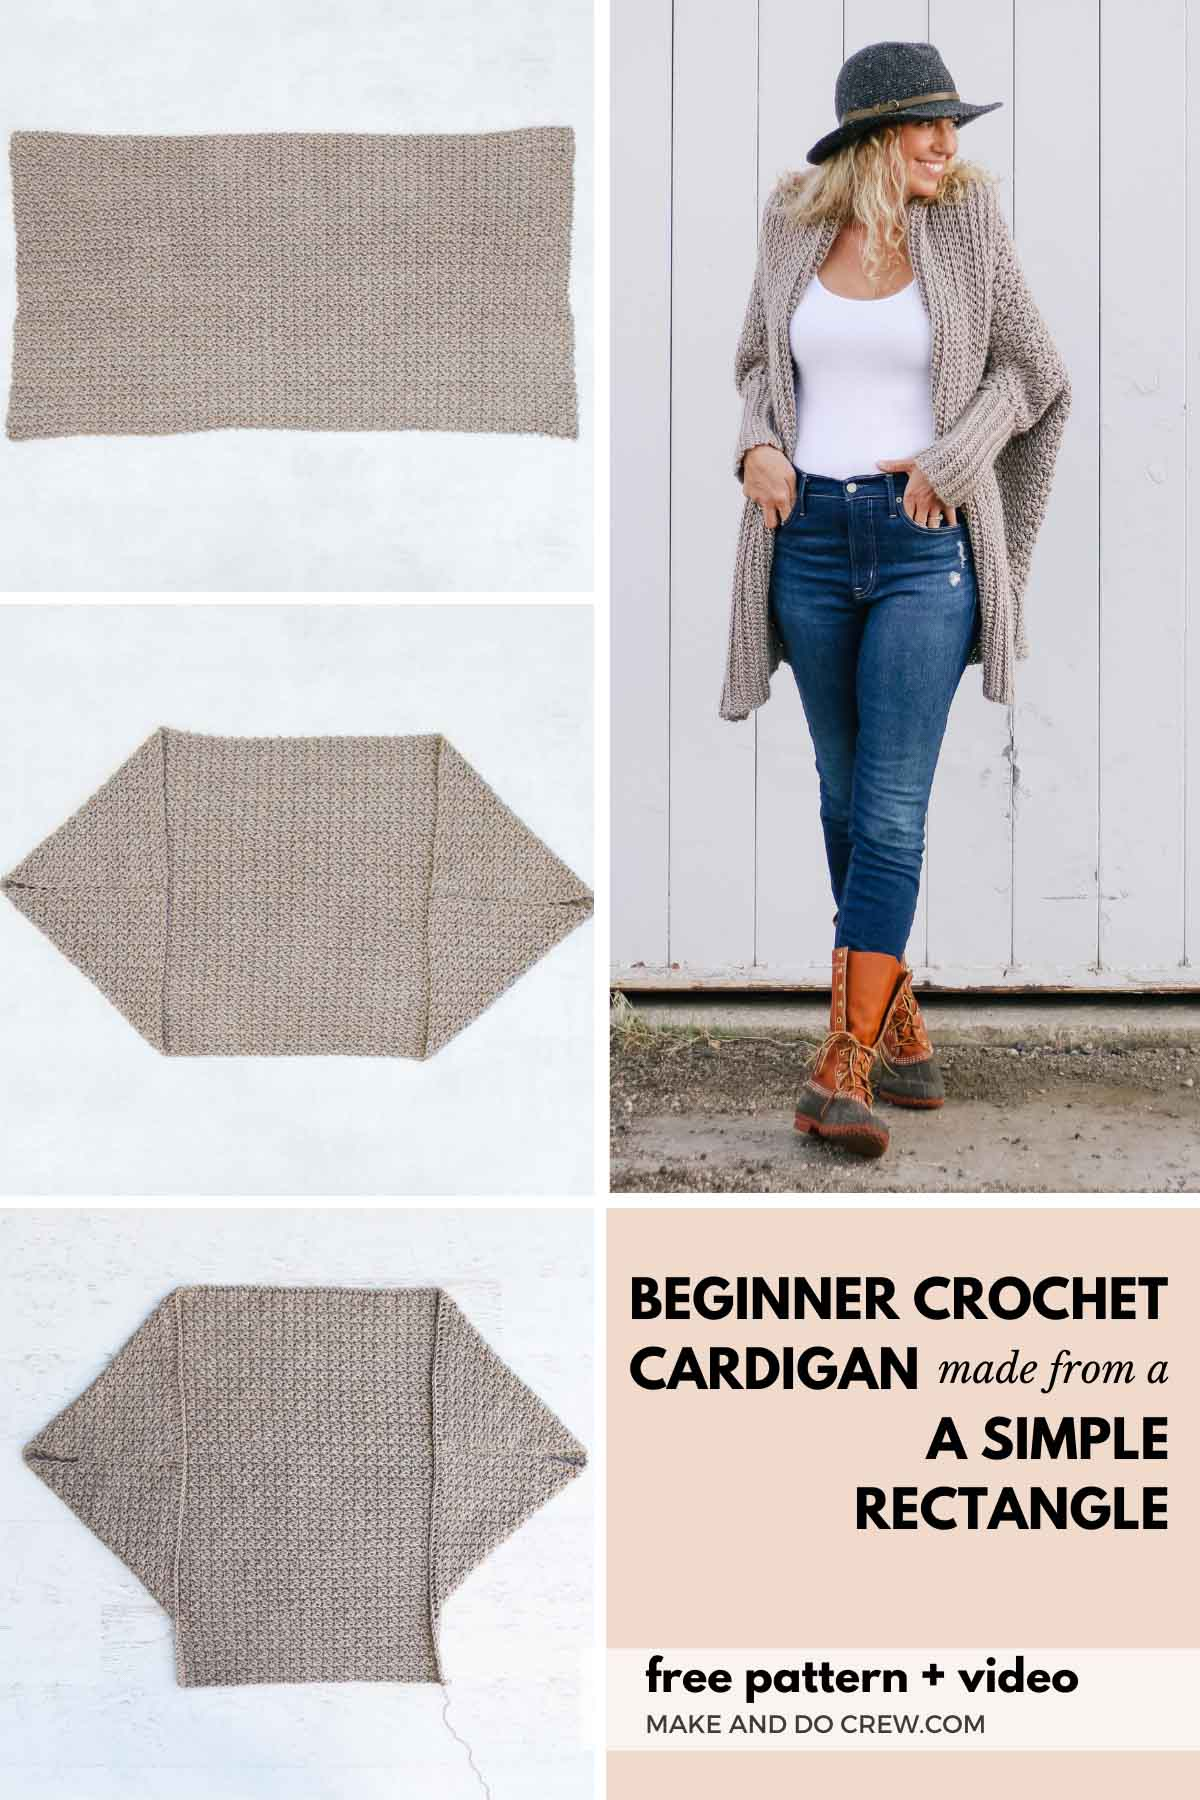 A step by step tutorial showing how to turn a crochet rectangle into a stylish, baggy crochet cardigan pattern.